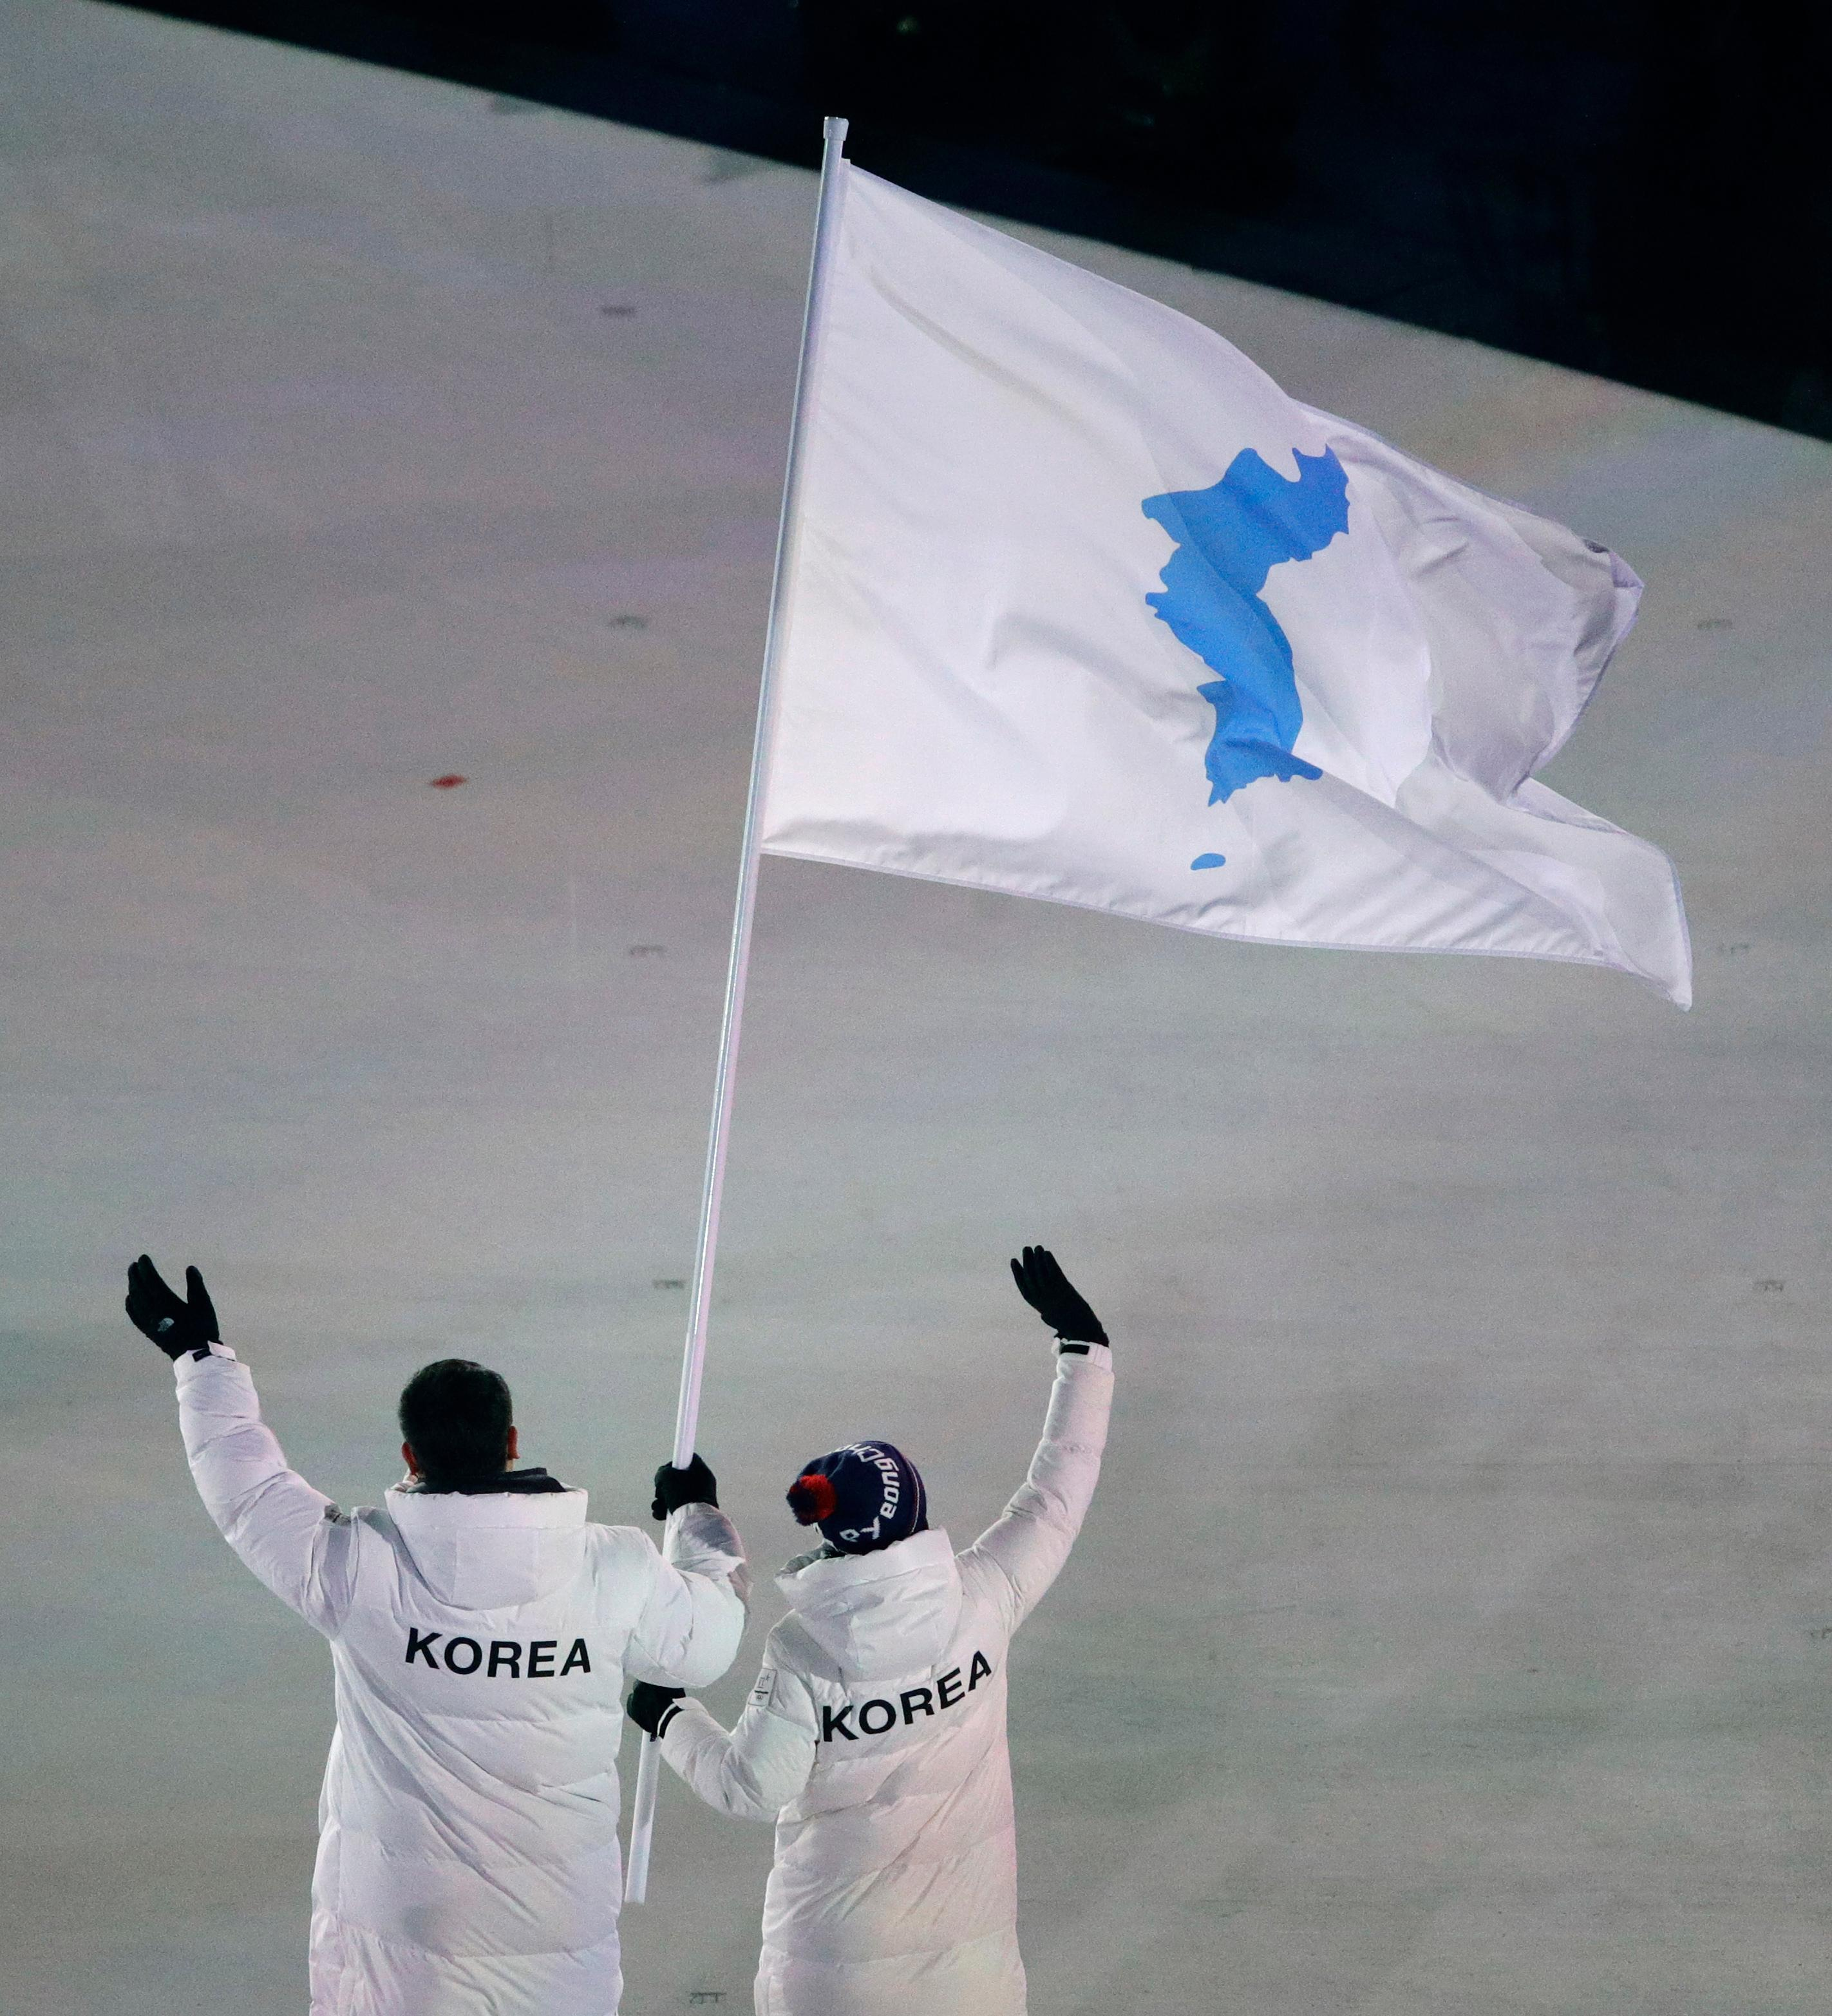 North Korea's Hwang Chung Gum and South Korea's Won Yun-jong arrive during the opening ceremony of the 2018 Winter Olympics in Pyeongchang, South Korea, Friday, Feb. 9, 2018. (AP Photo/Charlie Riedel)